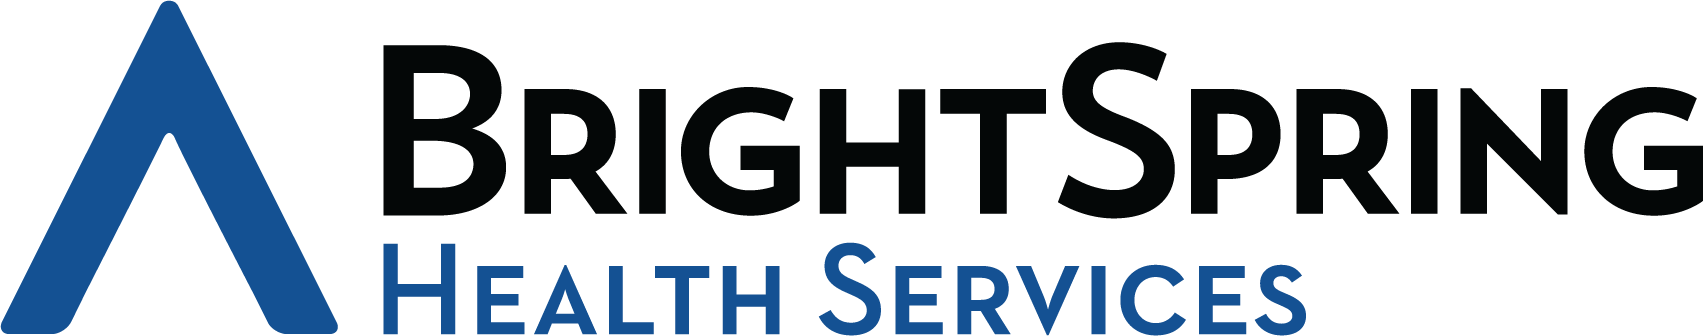 BrightSpring Health Services's logo